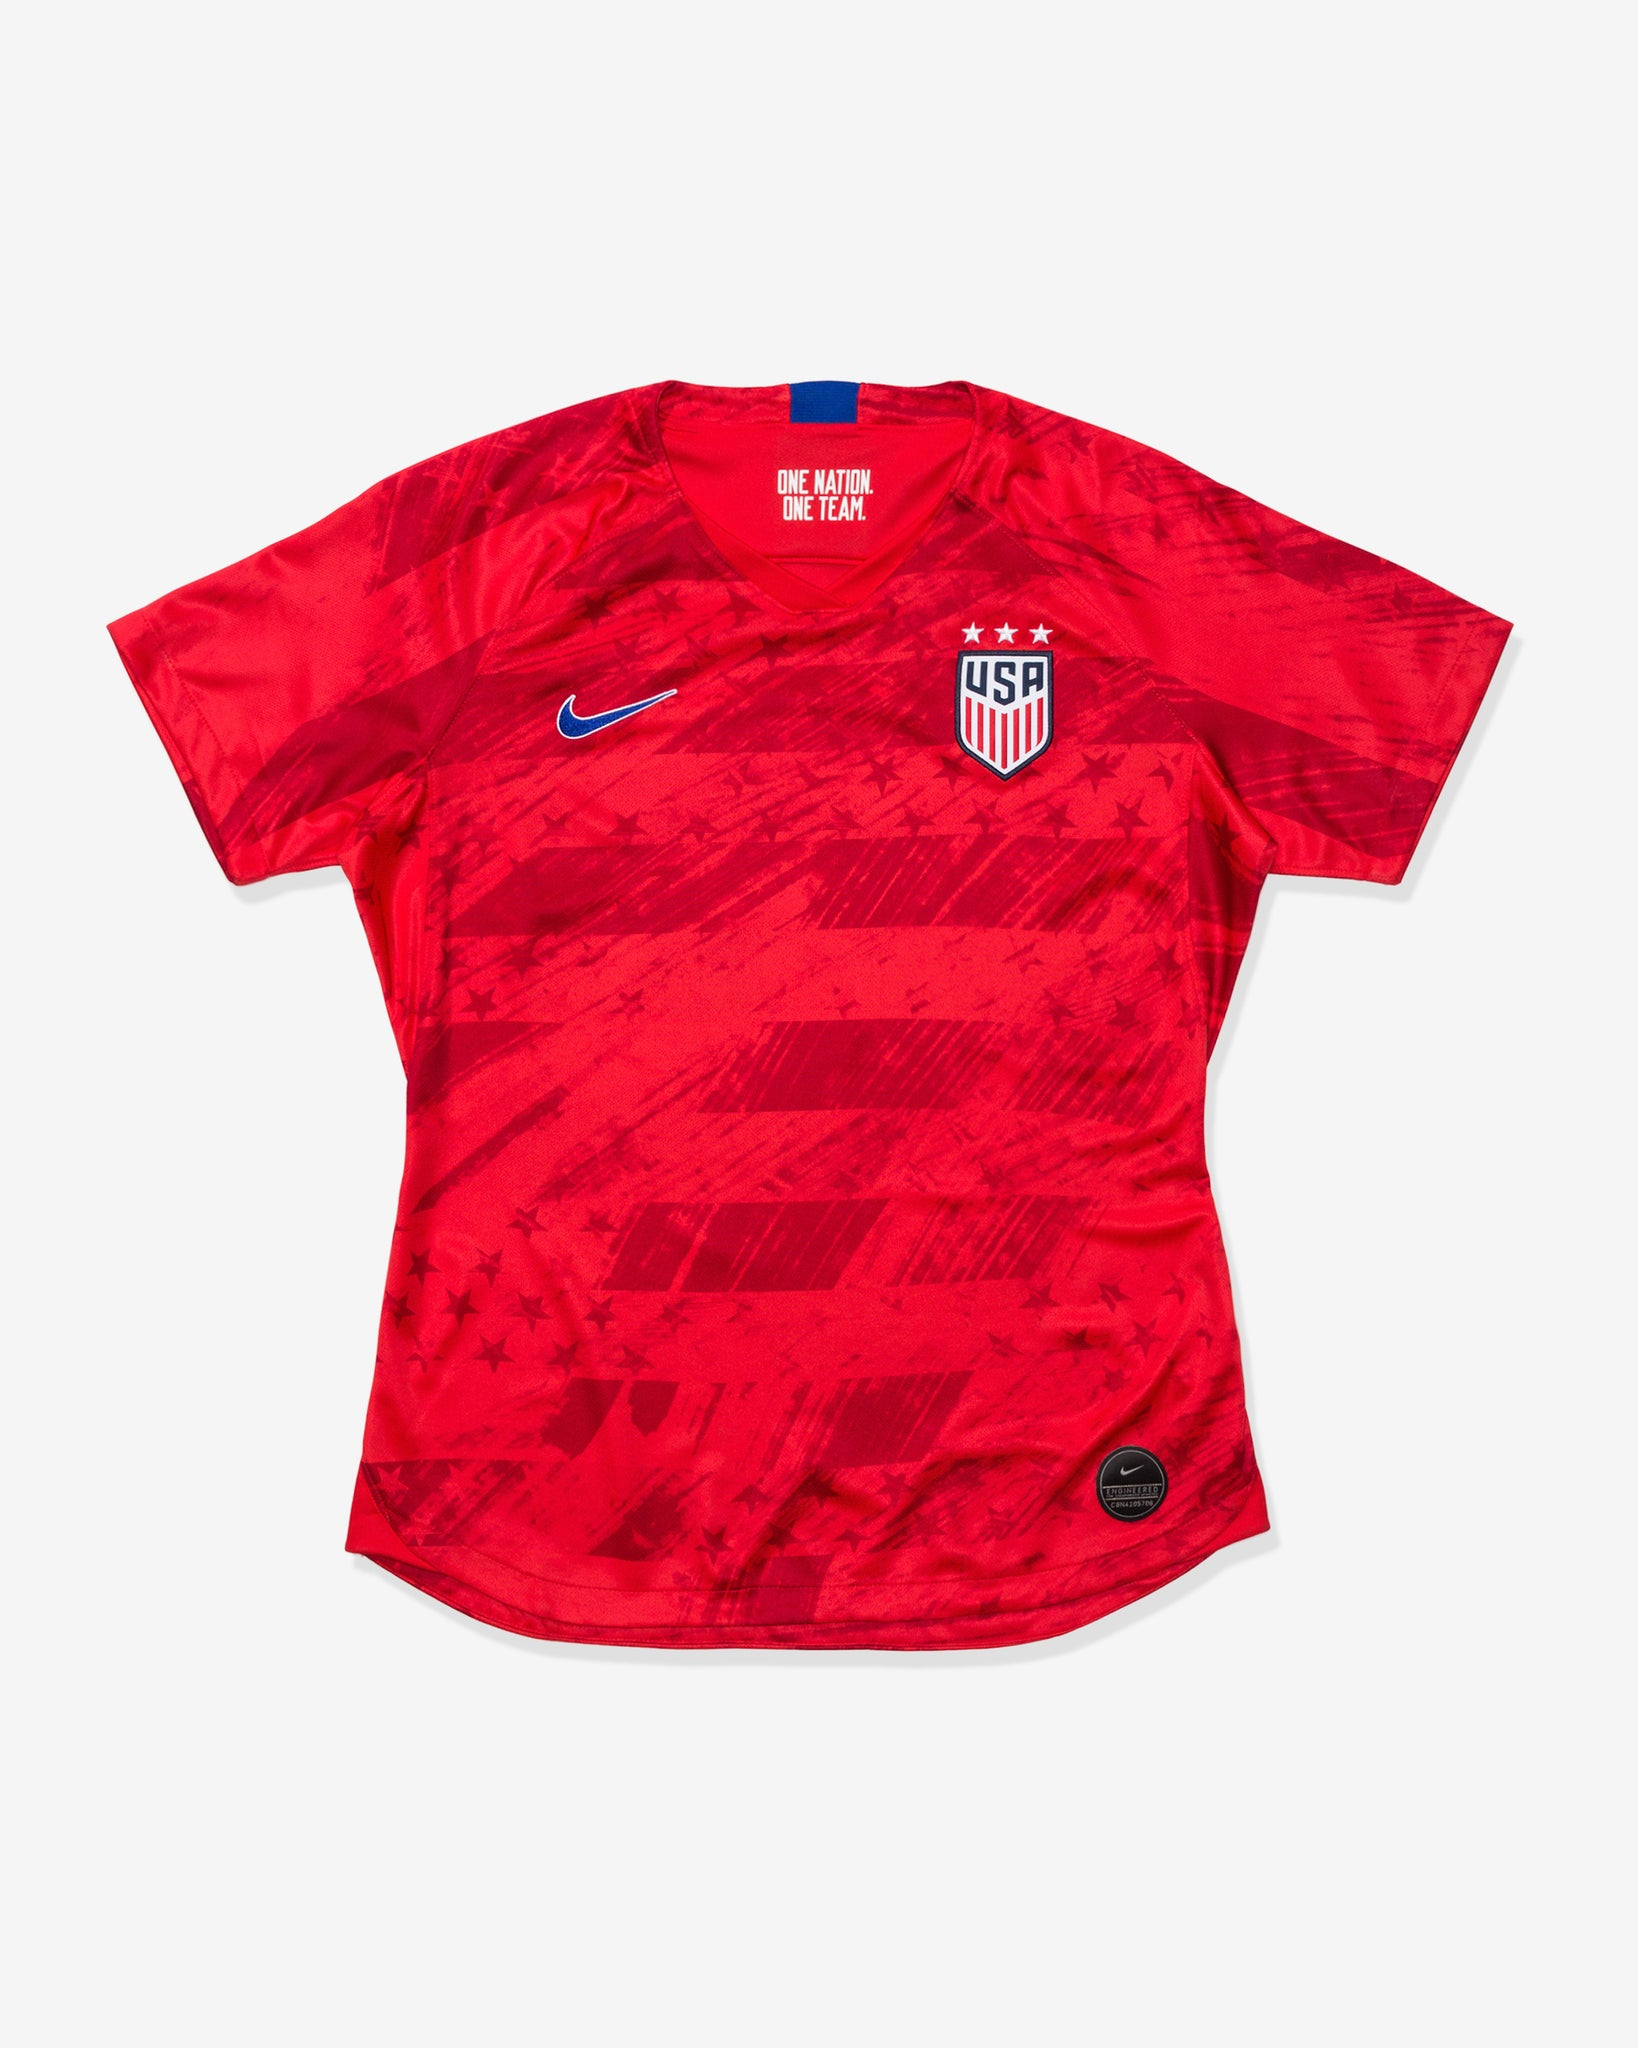 WOMEN'S U.S. STADIUM JERSEY 2019 - SPEEDRED/BRIGHTBLUE